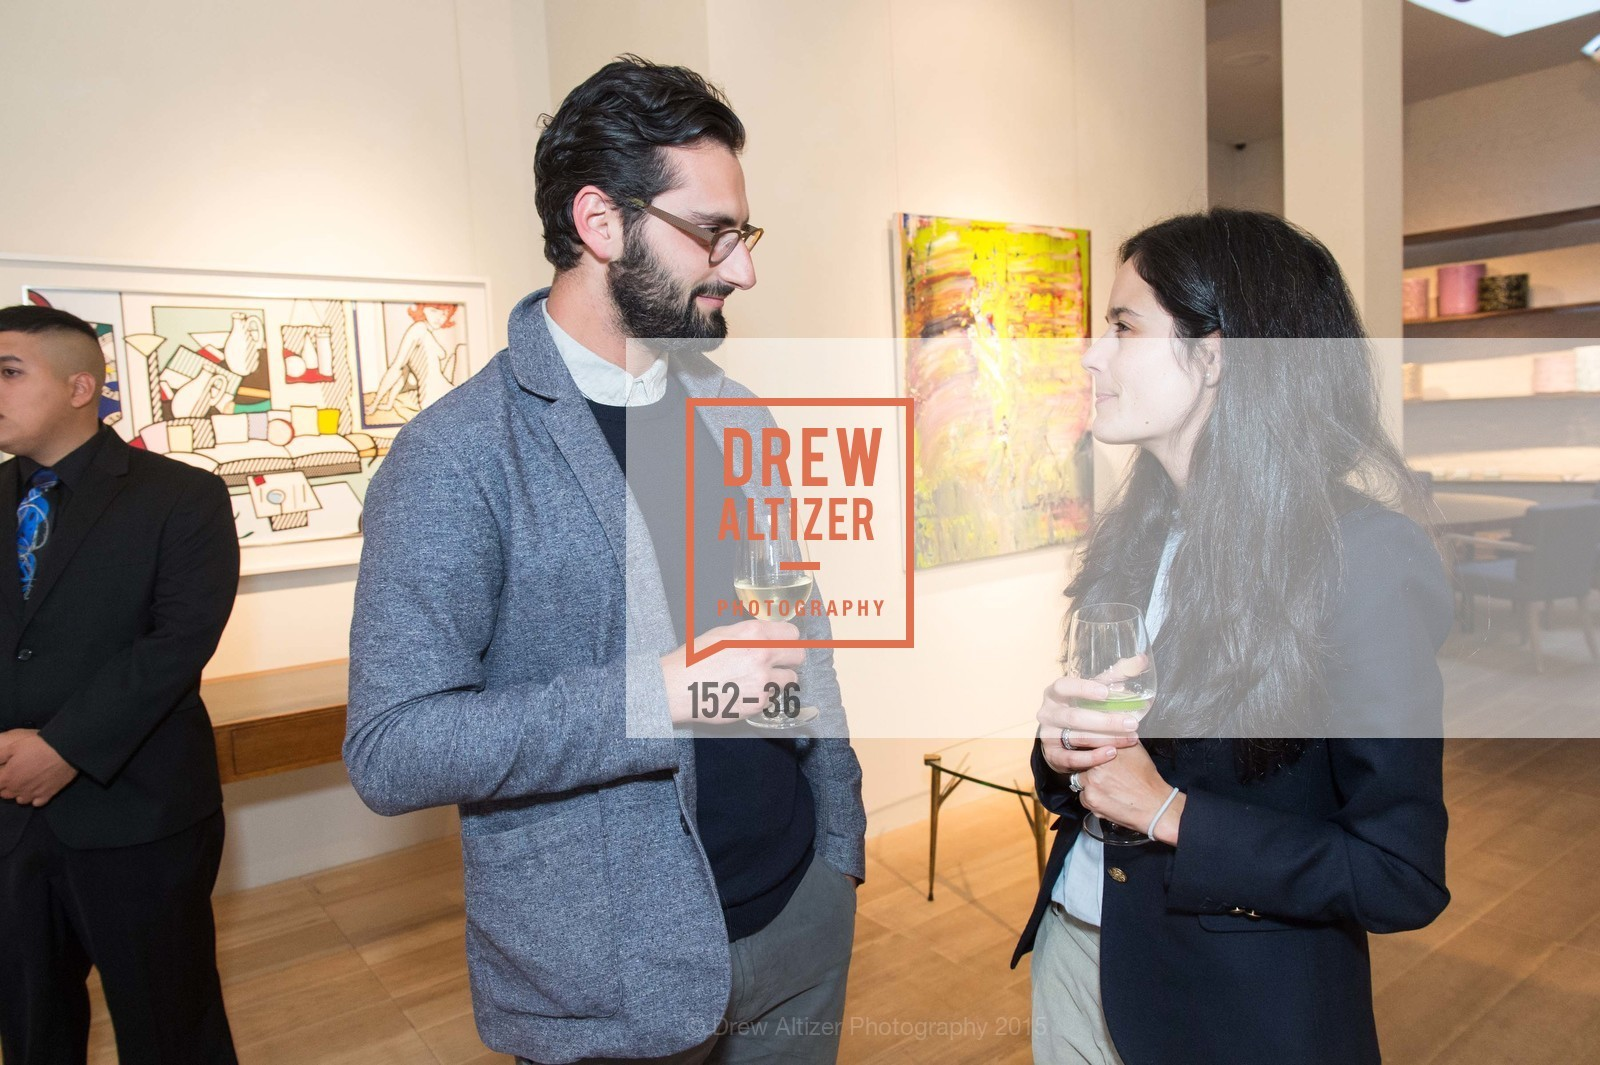 Joseph Becker, Florie Hutchinson, Post War and Contemporary preview at Hedge Gallery , Hedge Gallery. 501 Pacific Ave, San Francisco, CA 94133, April 16th, 2015,Drew Altizer, Drew Altizer Photography, full-service event agency, private events, San Francisco photographer, photographer California